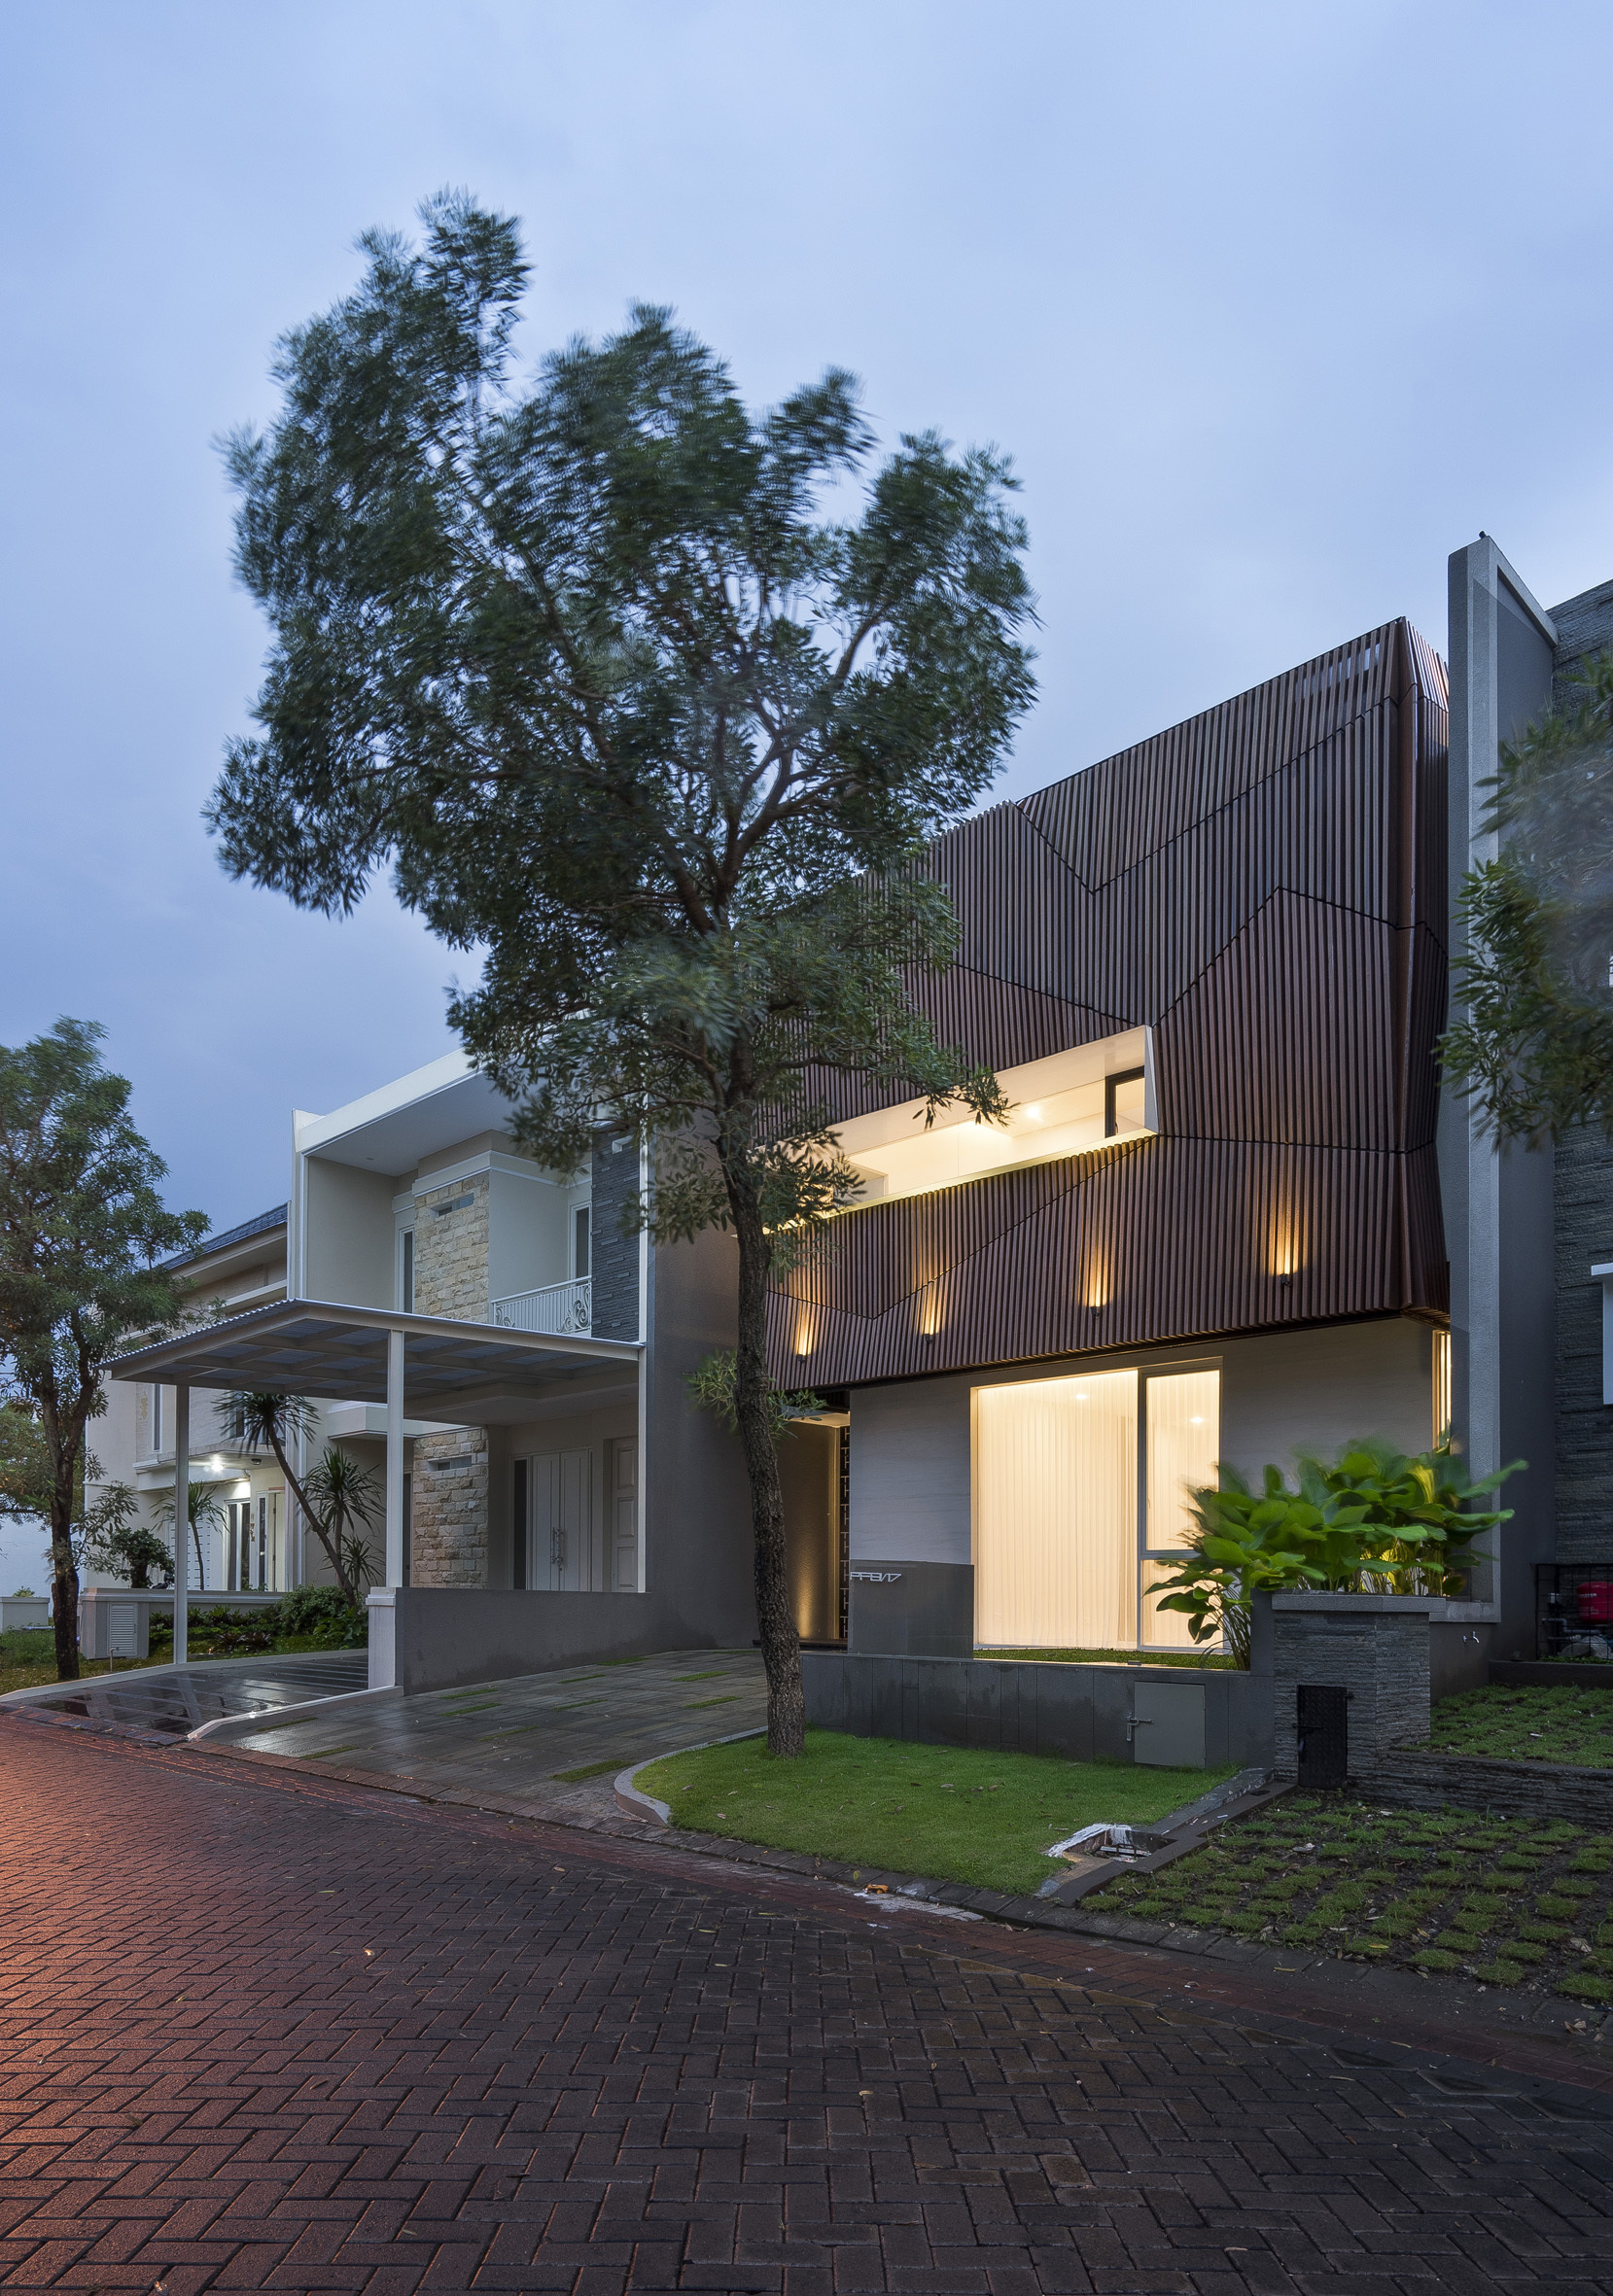 House Simple Projects Architecture Archdaily